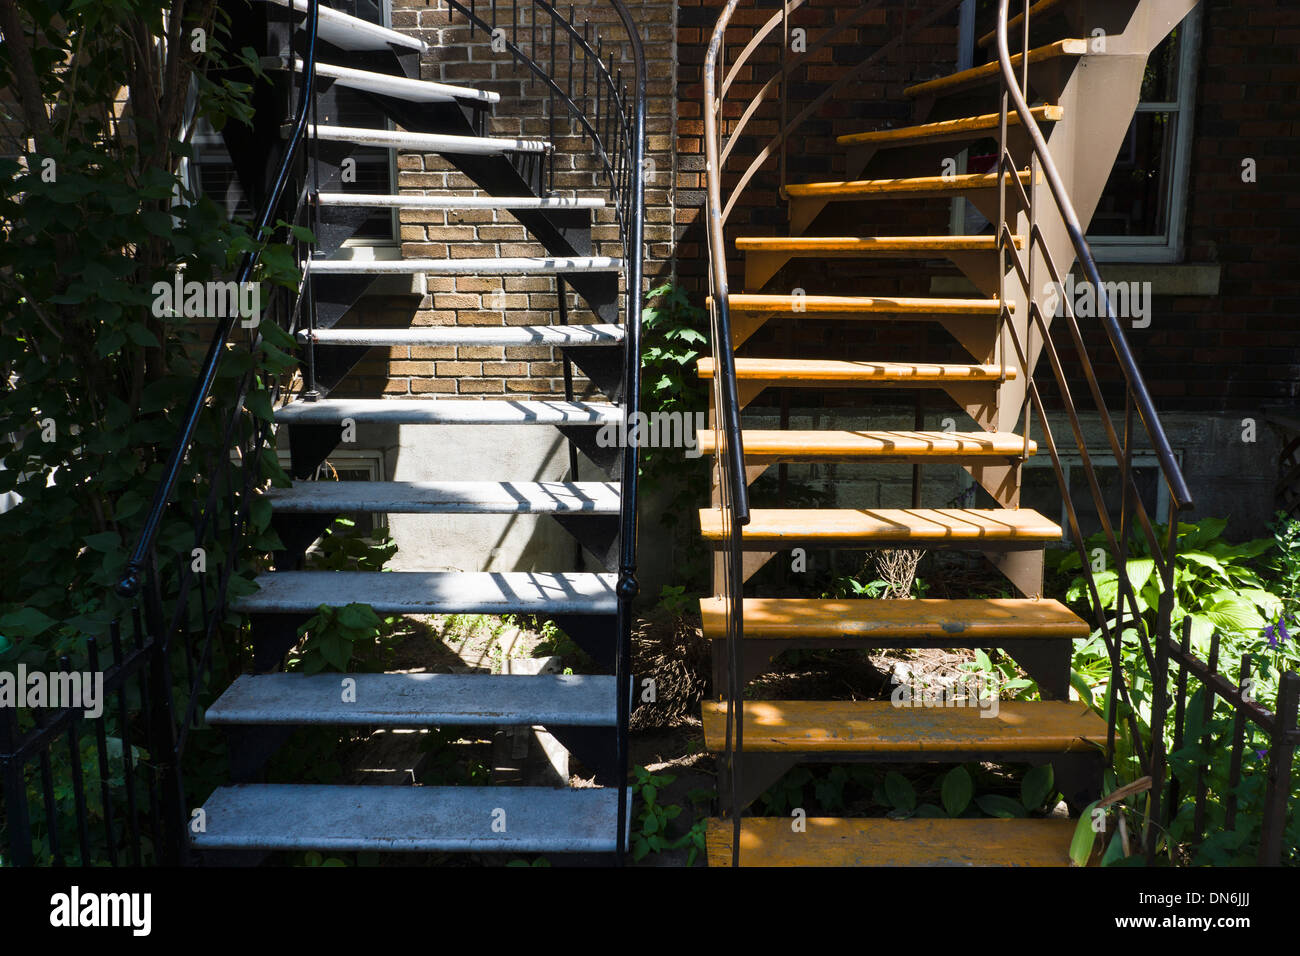 Typical iron exterior staircases in Montreal, Quebec, Canada. - Stock Image